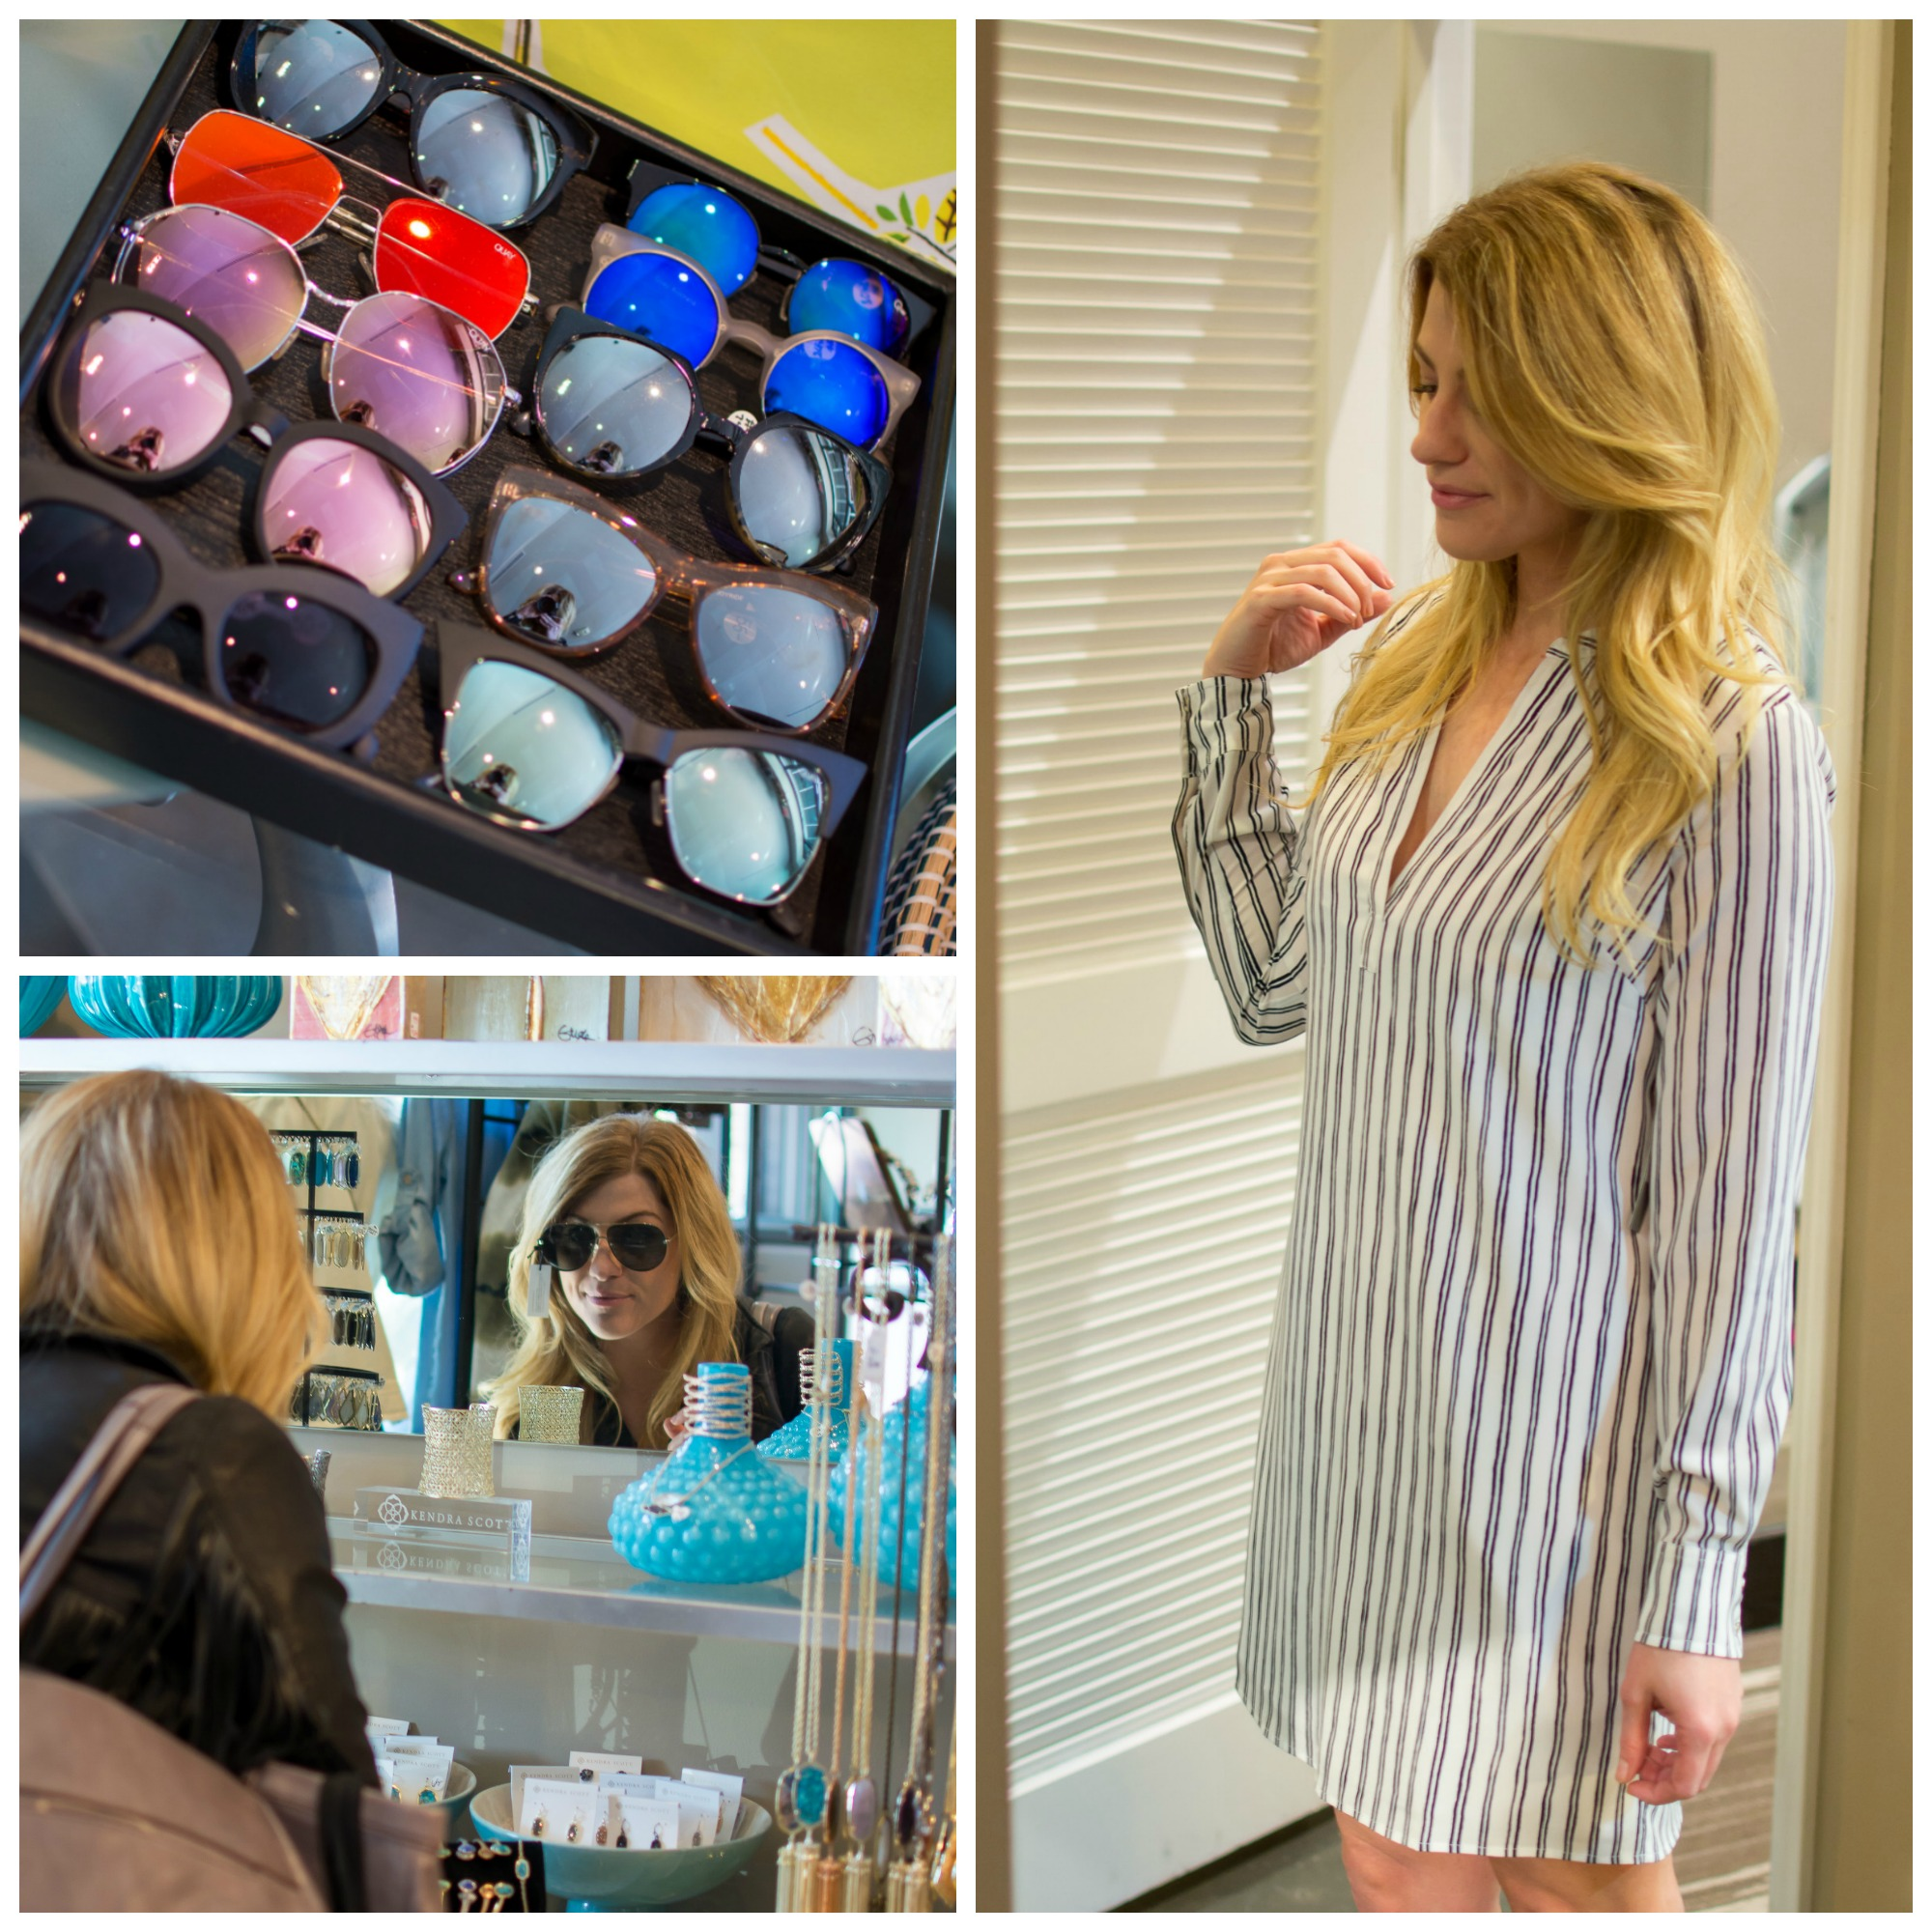 Shopping at Design in the City at The Village at Briarcliff. | Ashley from Le Stylo Rouge